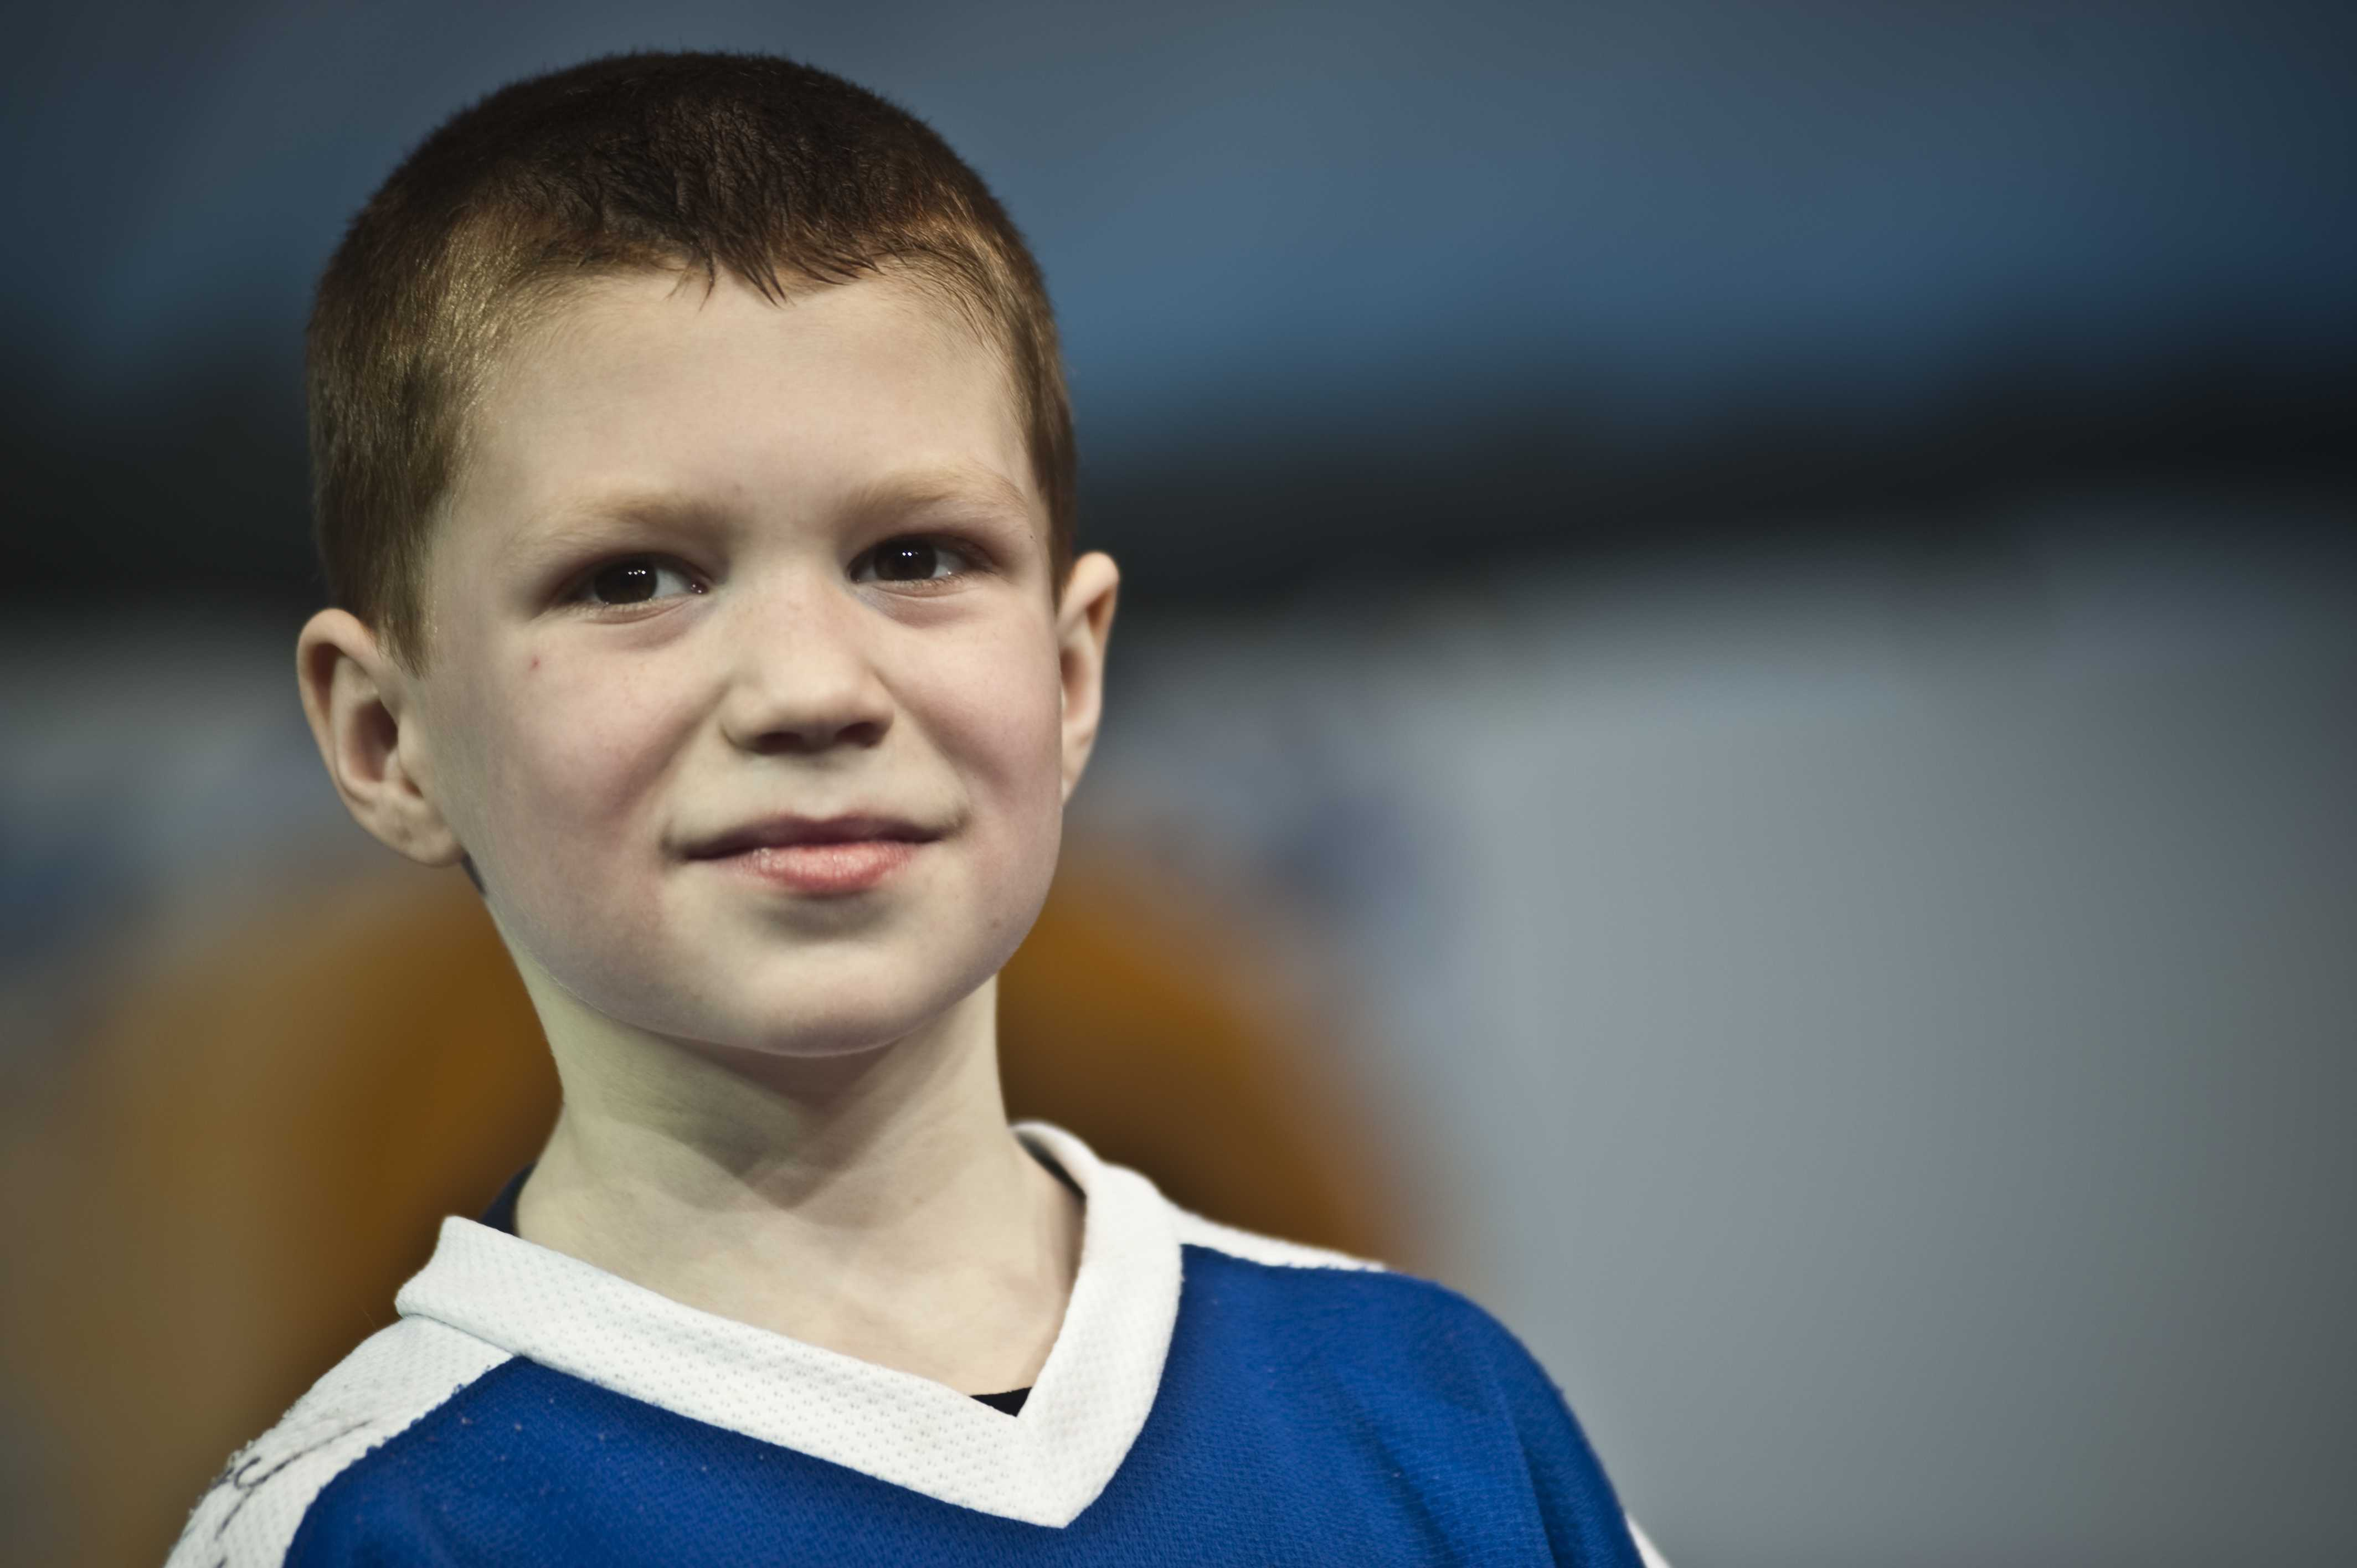 8-year-old Nick Curley spoke during Block 9. Curley raised nearly $40,000 for the Danny Did Foundation by ice skating over 100 miles.